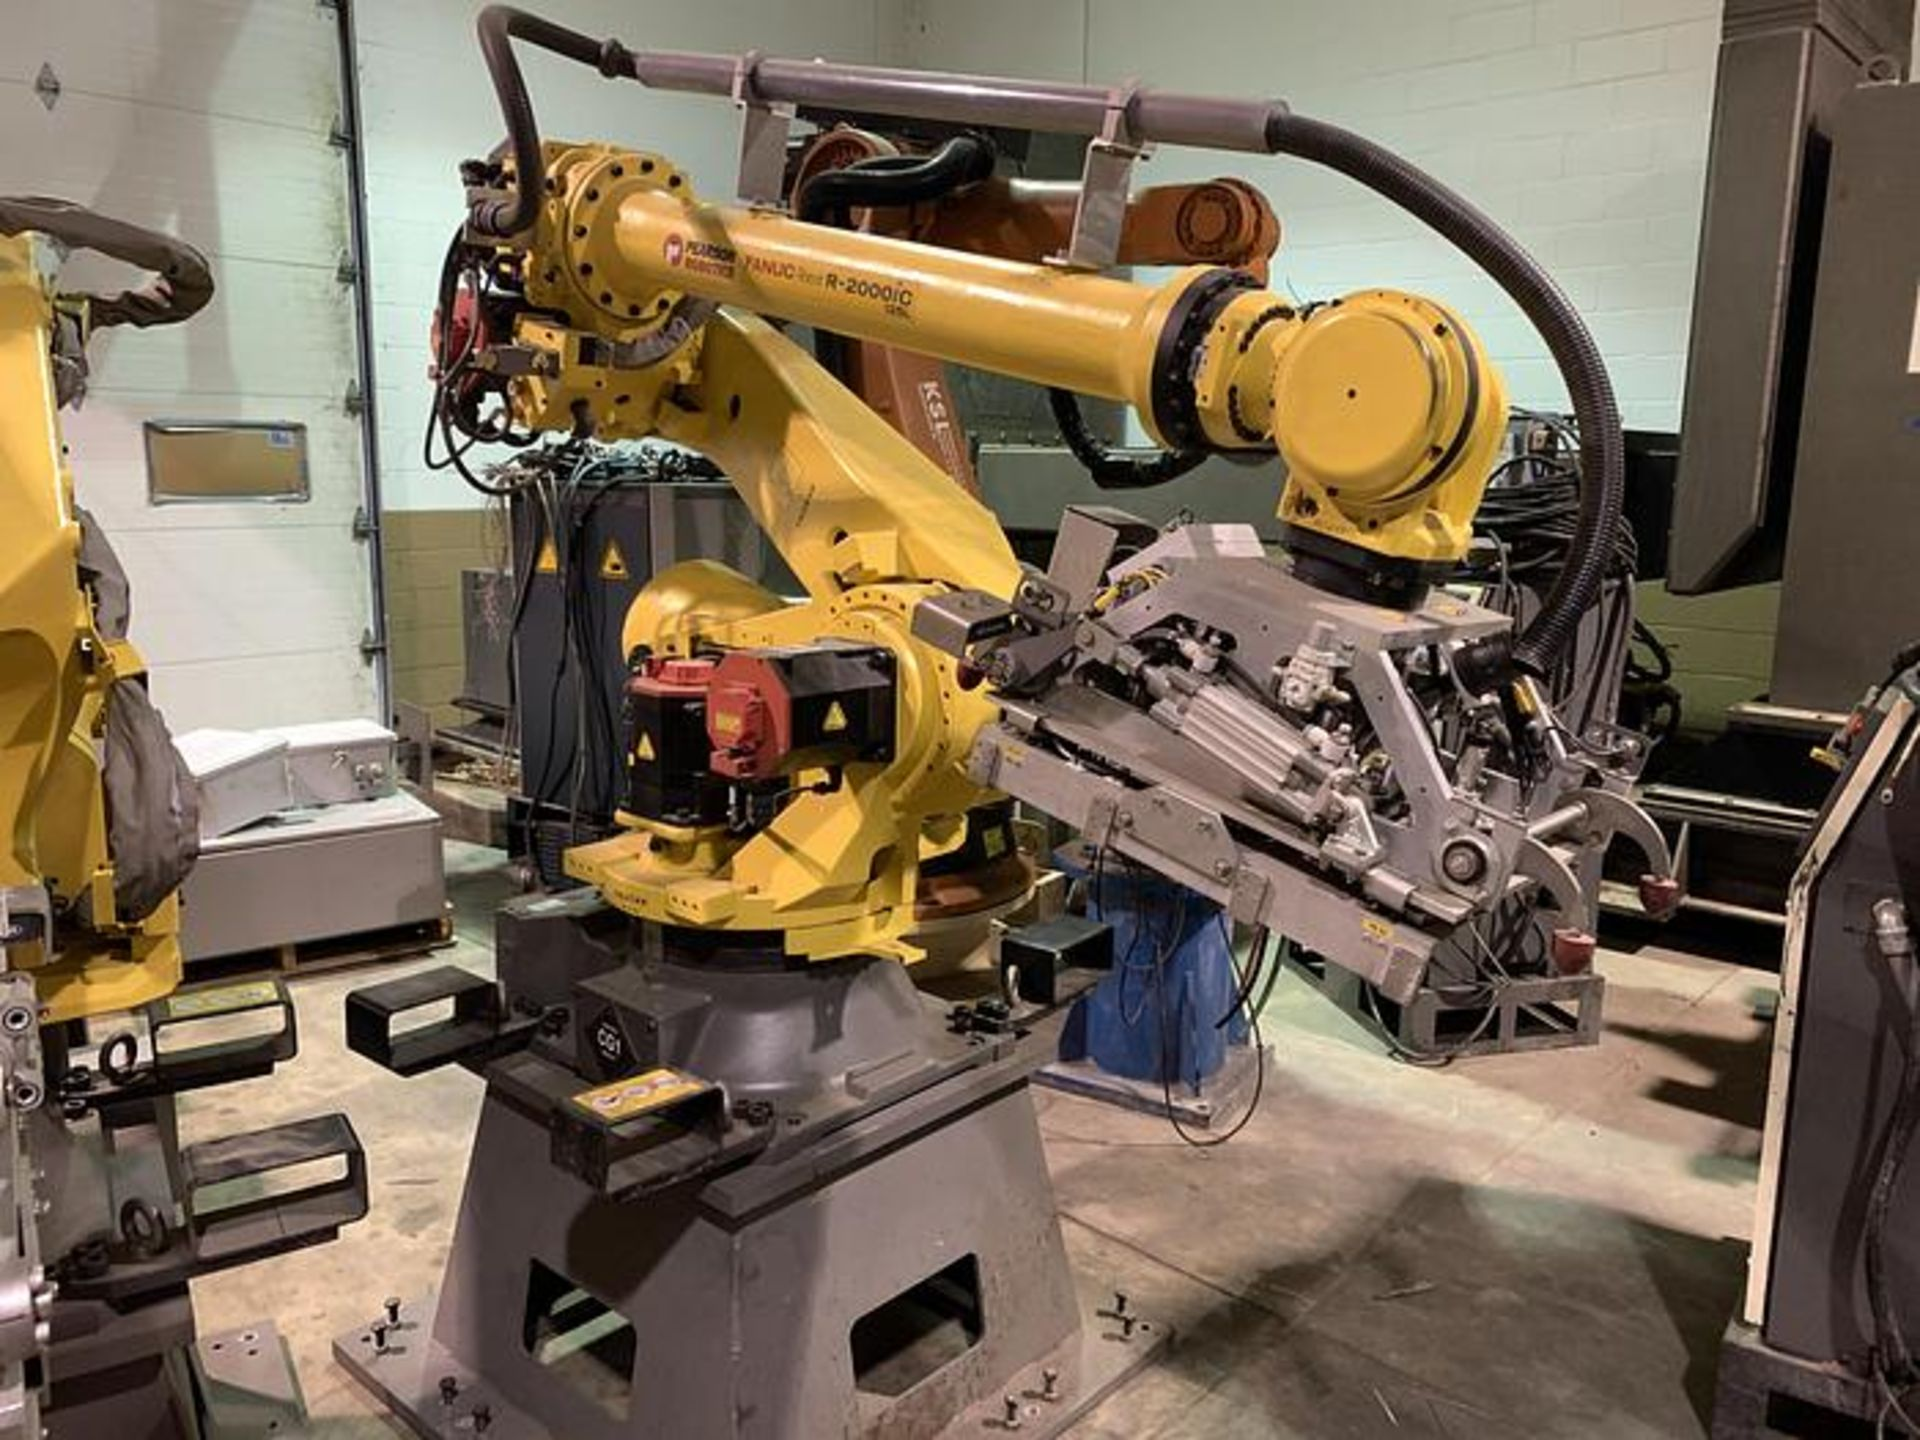 FANUC ROBOT R2000iC/125L 6 AXIS ROBOT WITH R30iB CONTROLLER, IR VISION, SN 194246, CABLES & TEACH - Image 2 of 19